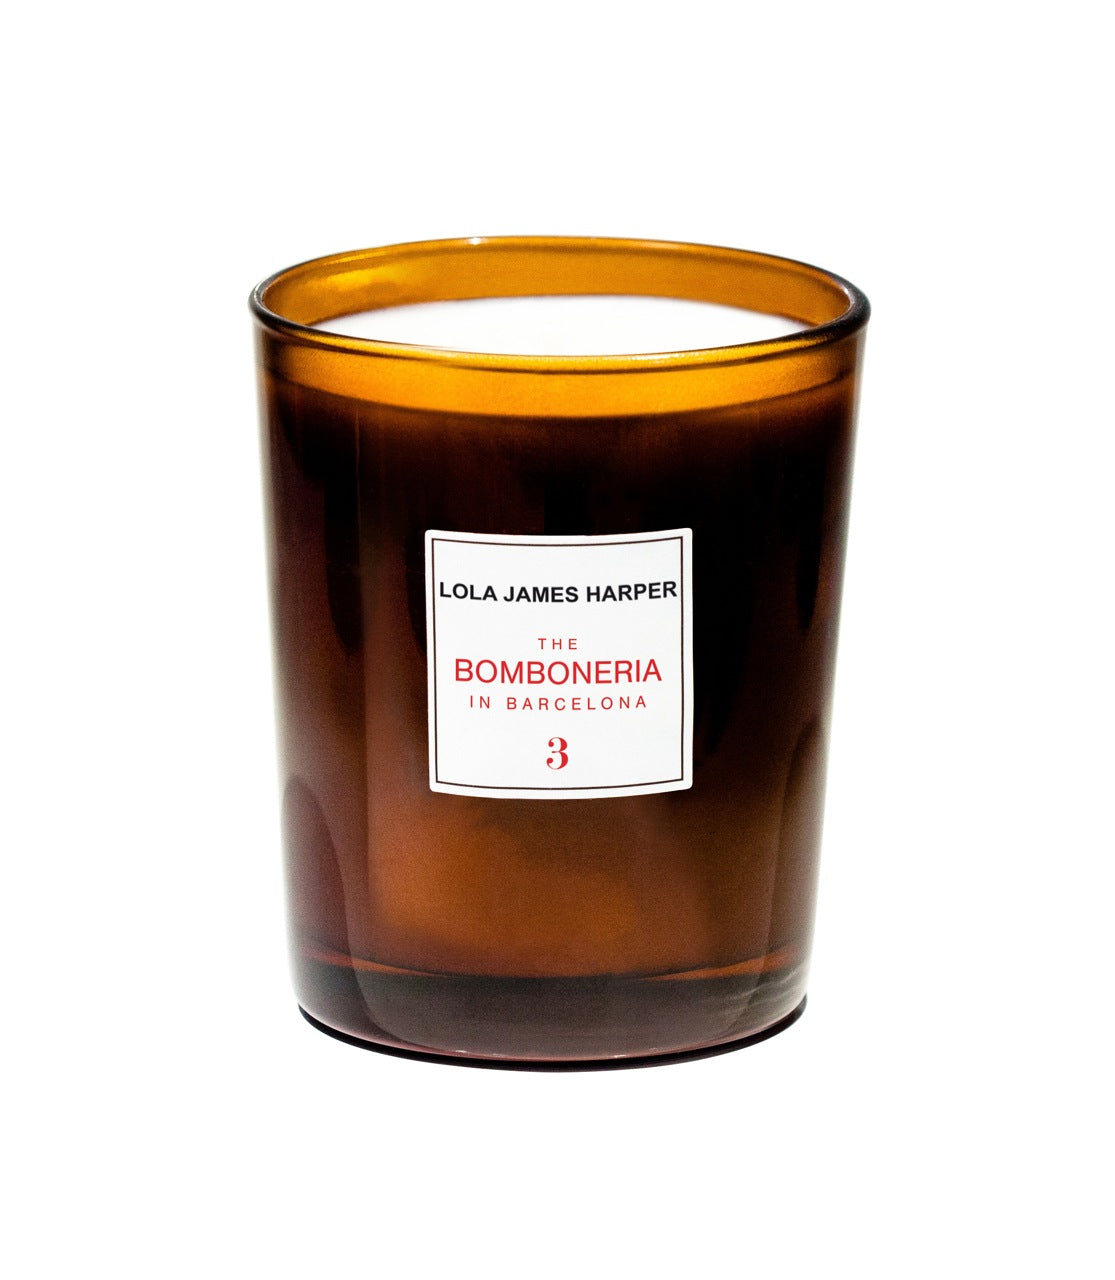 3 The Bomboneria in Barcelona - 190G CANDLE